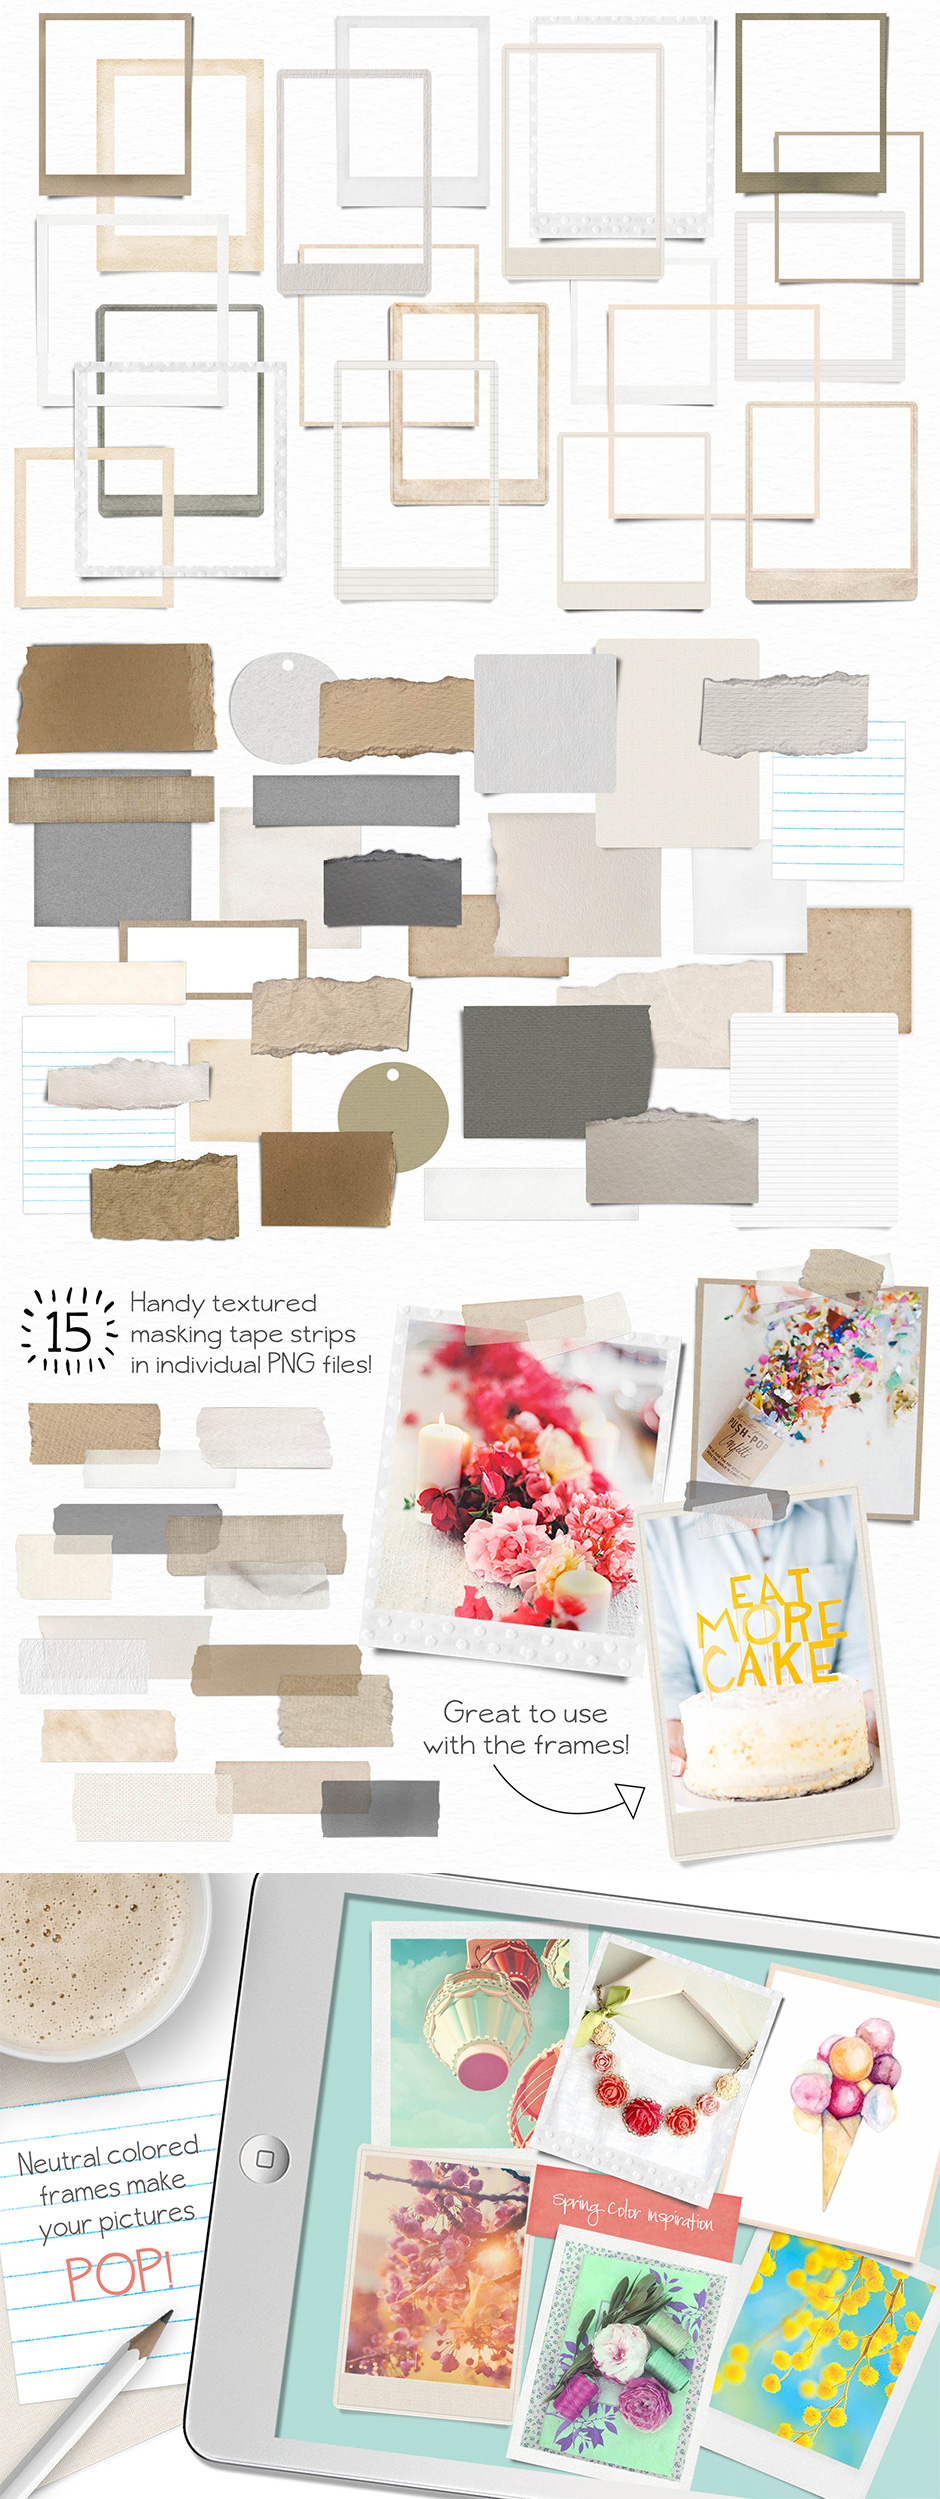 Textured Frames and Notes